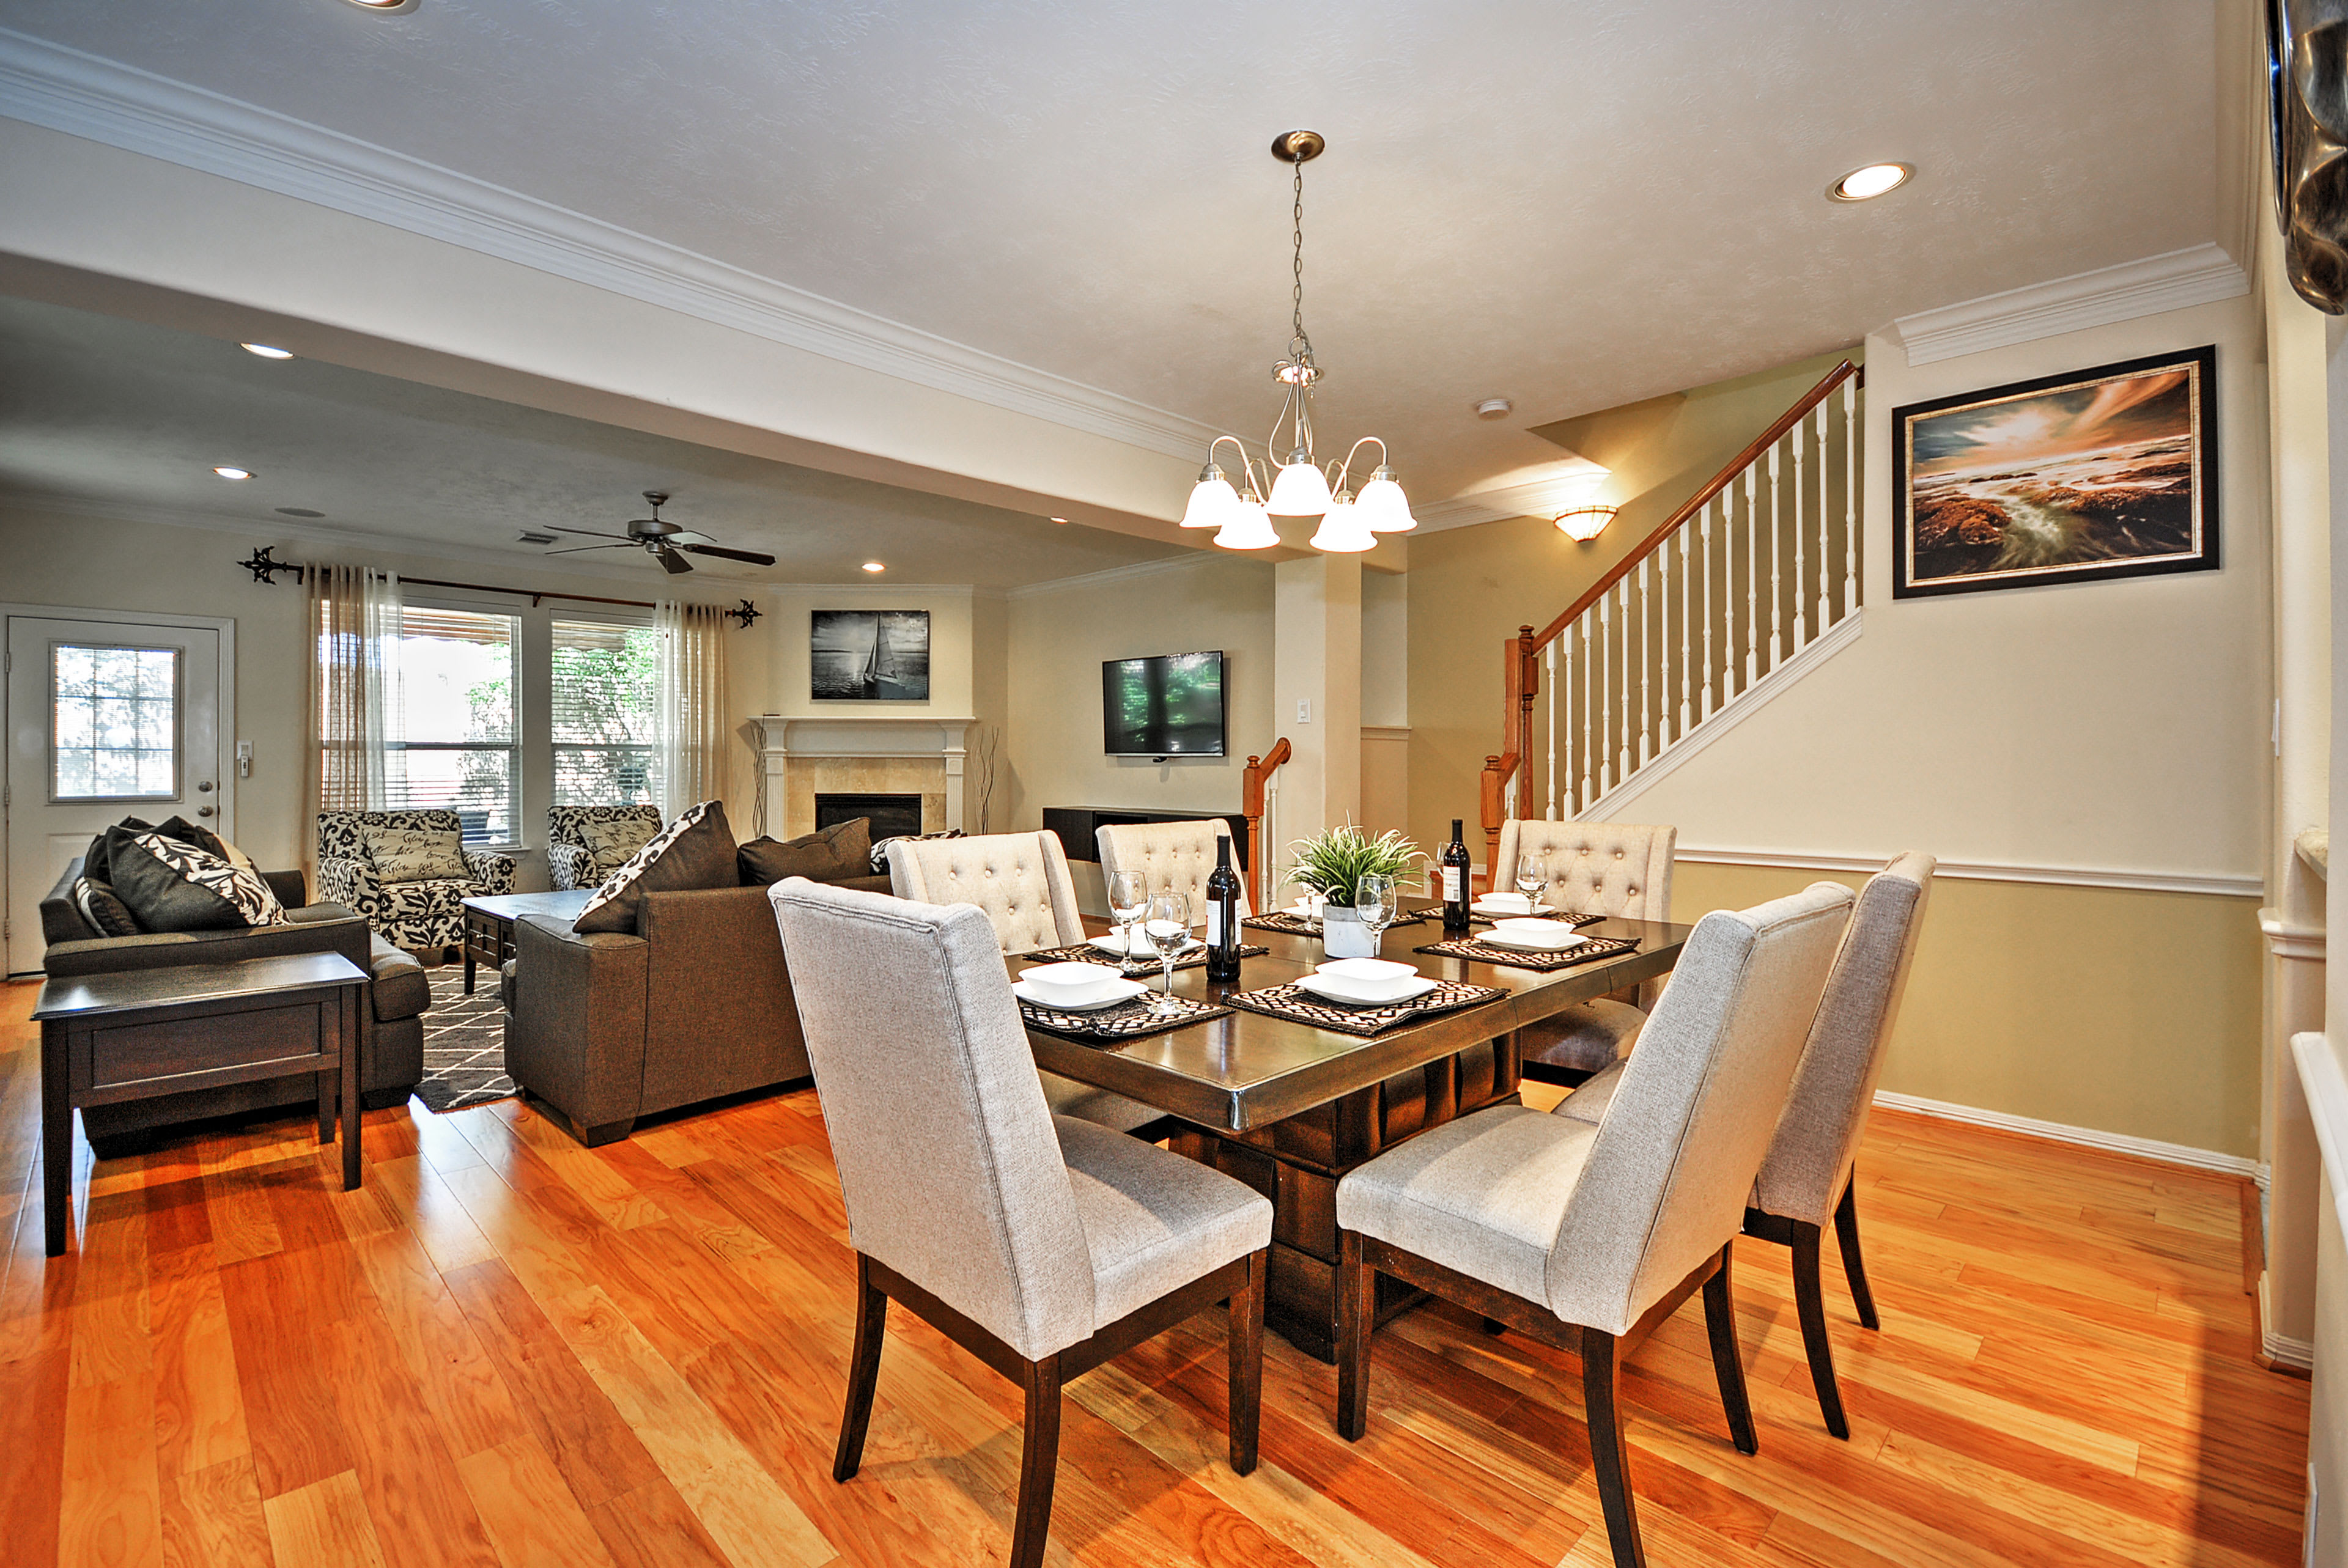 The dining area is located just off of the living room.